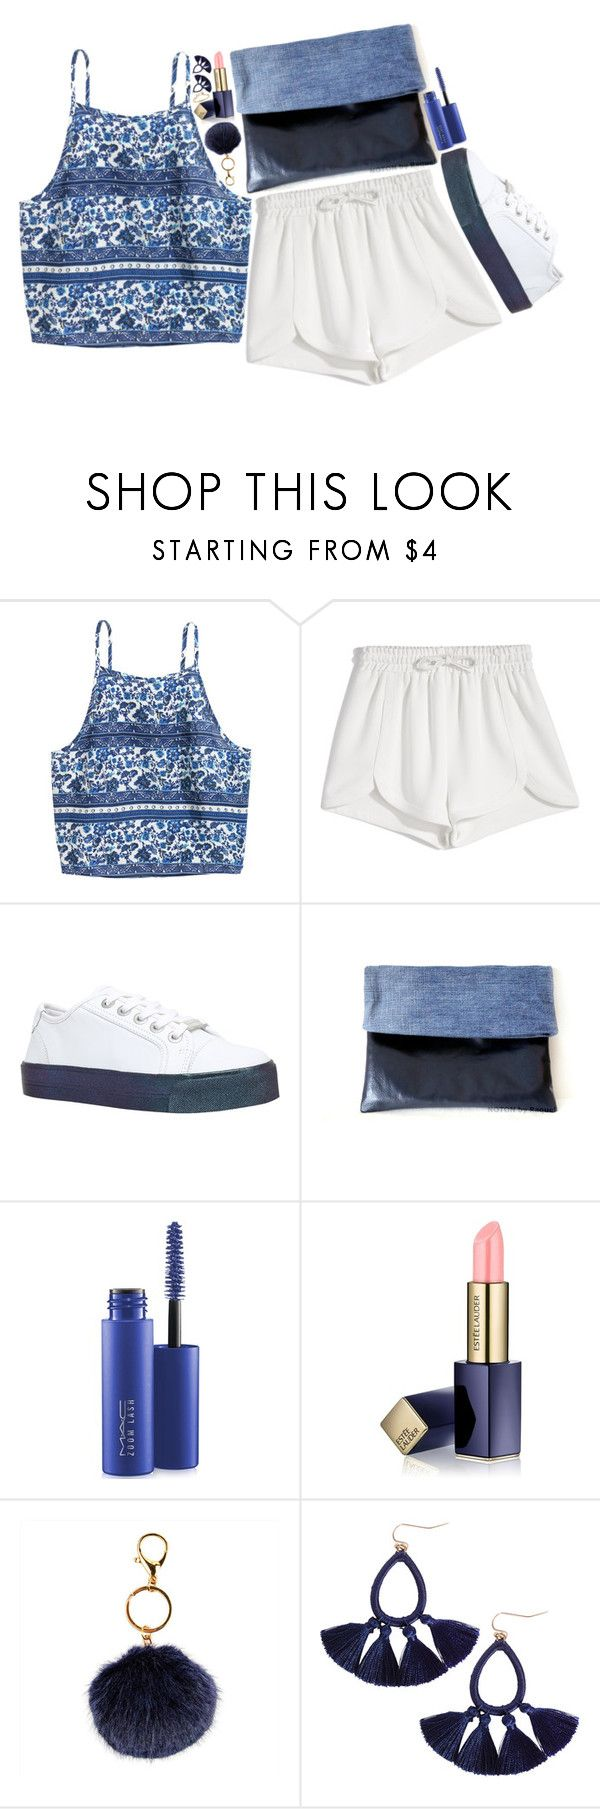 """""""you need to let me go"""" by neurotic-mind ❤ liked on Polyvore featuring Francesco Scognamiglio, Carvela, MAC Cosmetics, Estée Lauder, Carole, Humble Chic and WWAKE"""